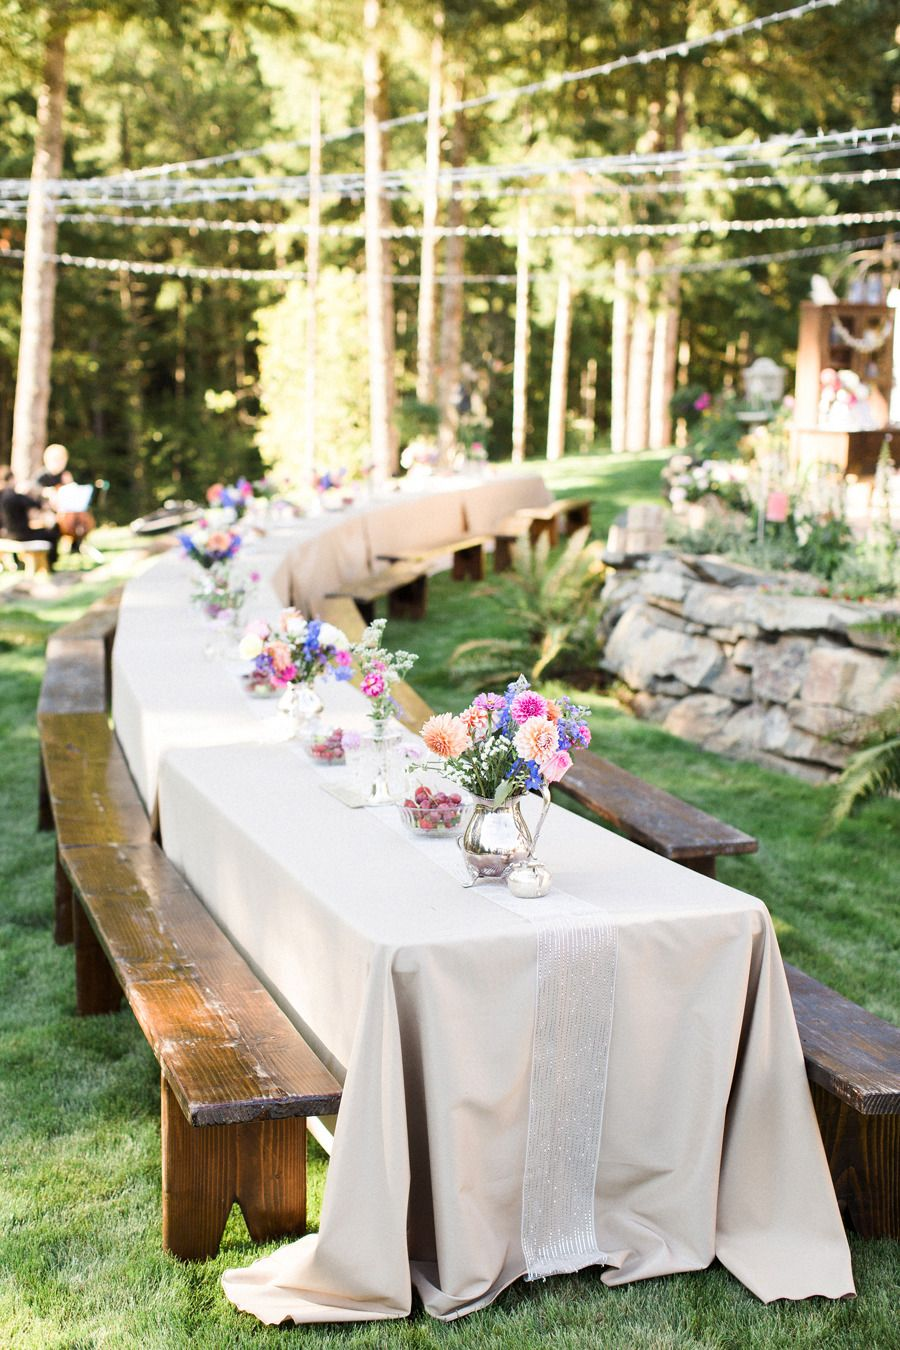 DIY Backyard Wedding outdoor wedding reception ideas seating for outdoor wedding #boho #outdoorwedding & DIY Backyard Oregon Wedding | Boho Wedding | Backyard wedding ...